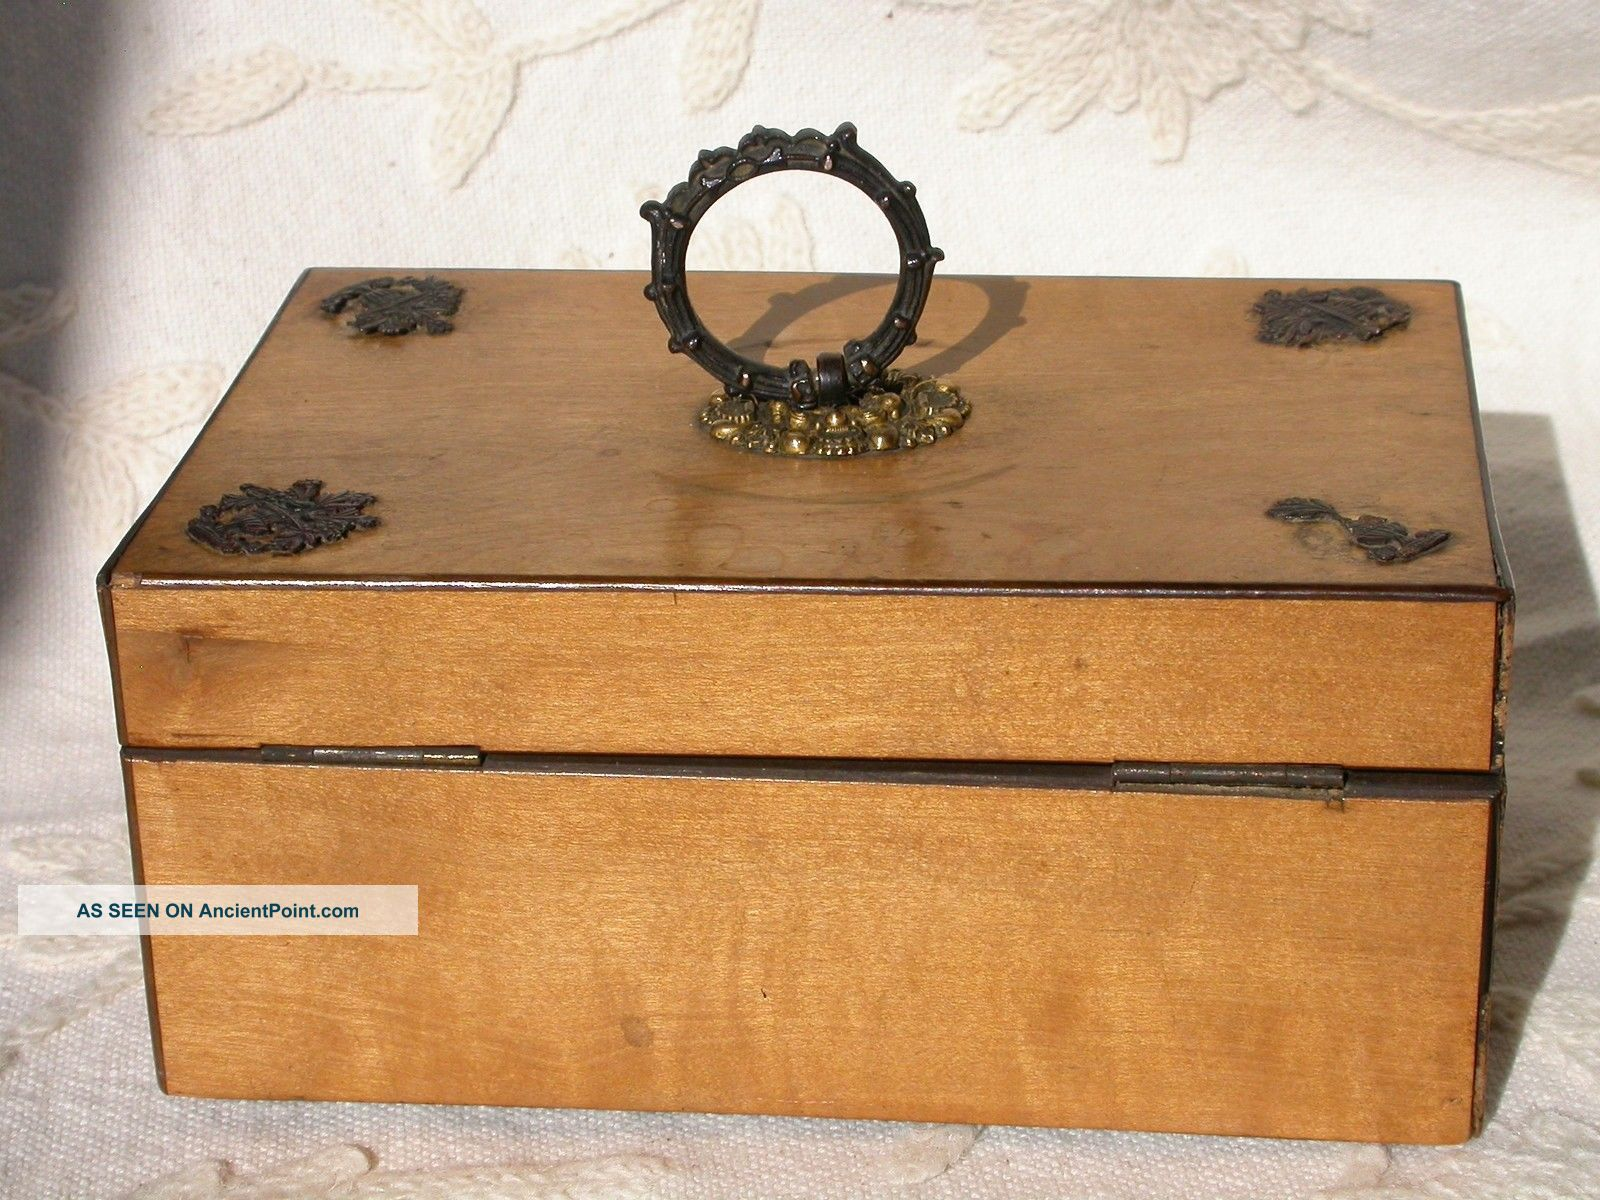 Splendid Antique Palais Royal Sewing Box 8 Tools Pansies Paris C 1810 Tools, Scissors & Measures photo